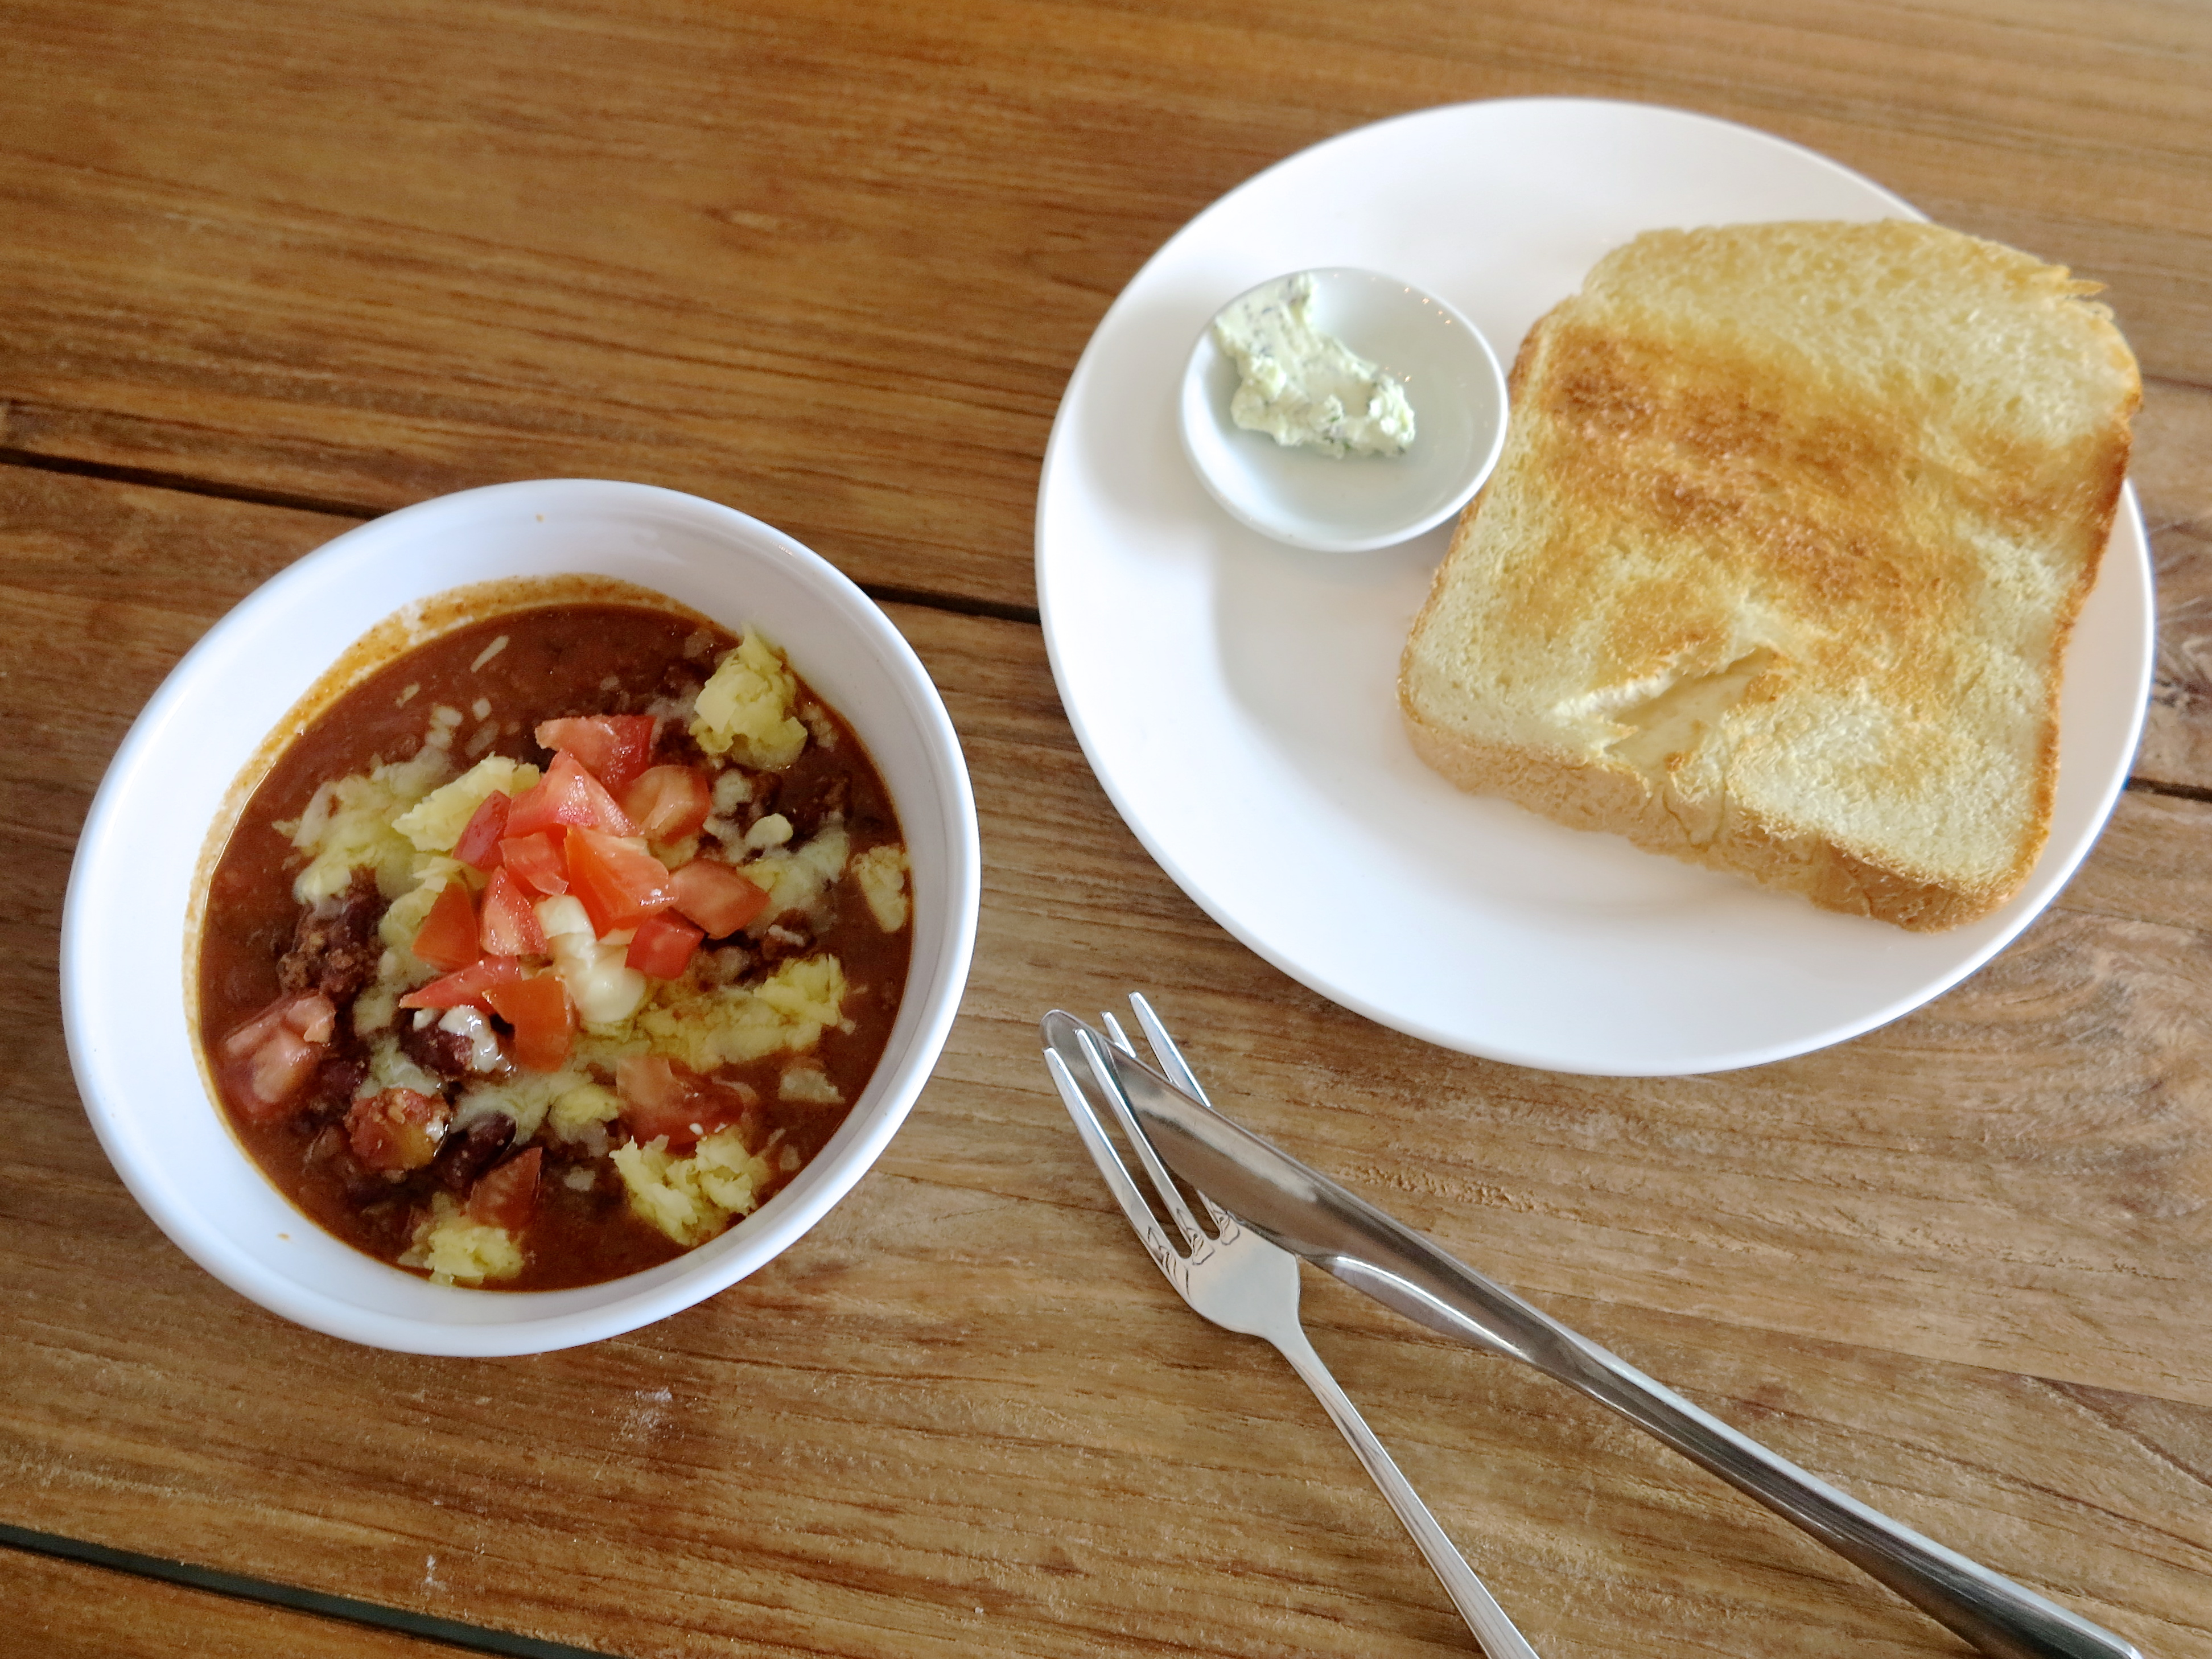 Southern Style Chili With Warm Homemade Bread